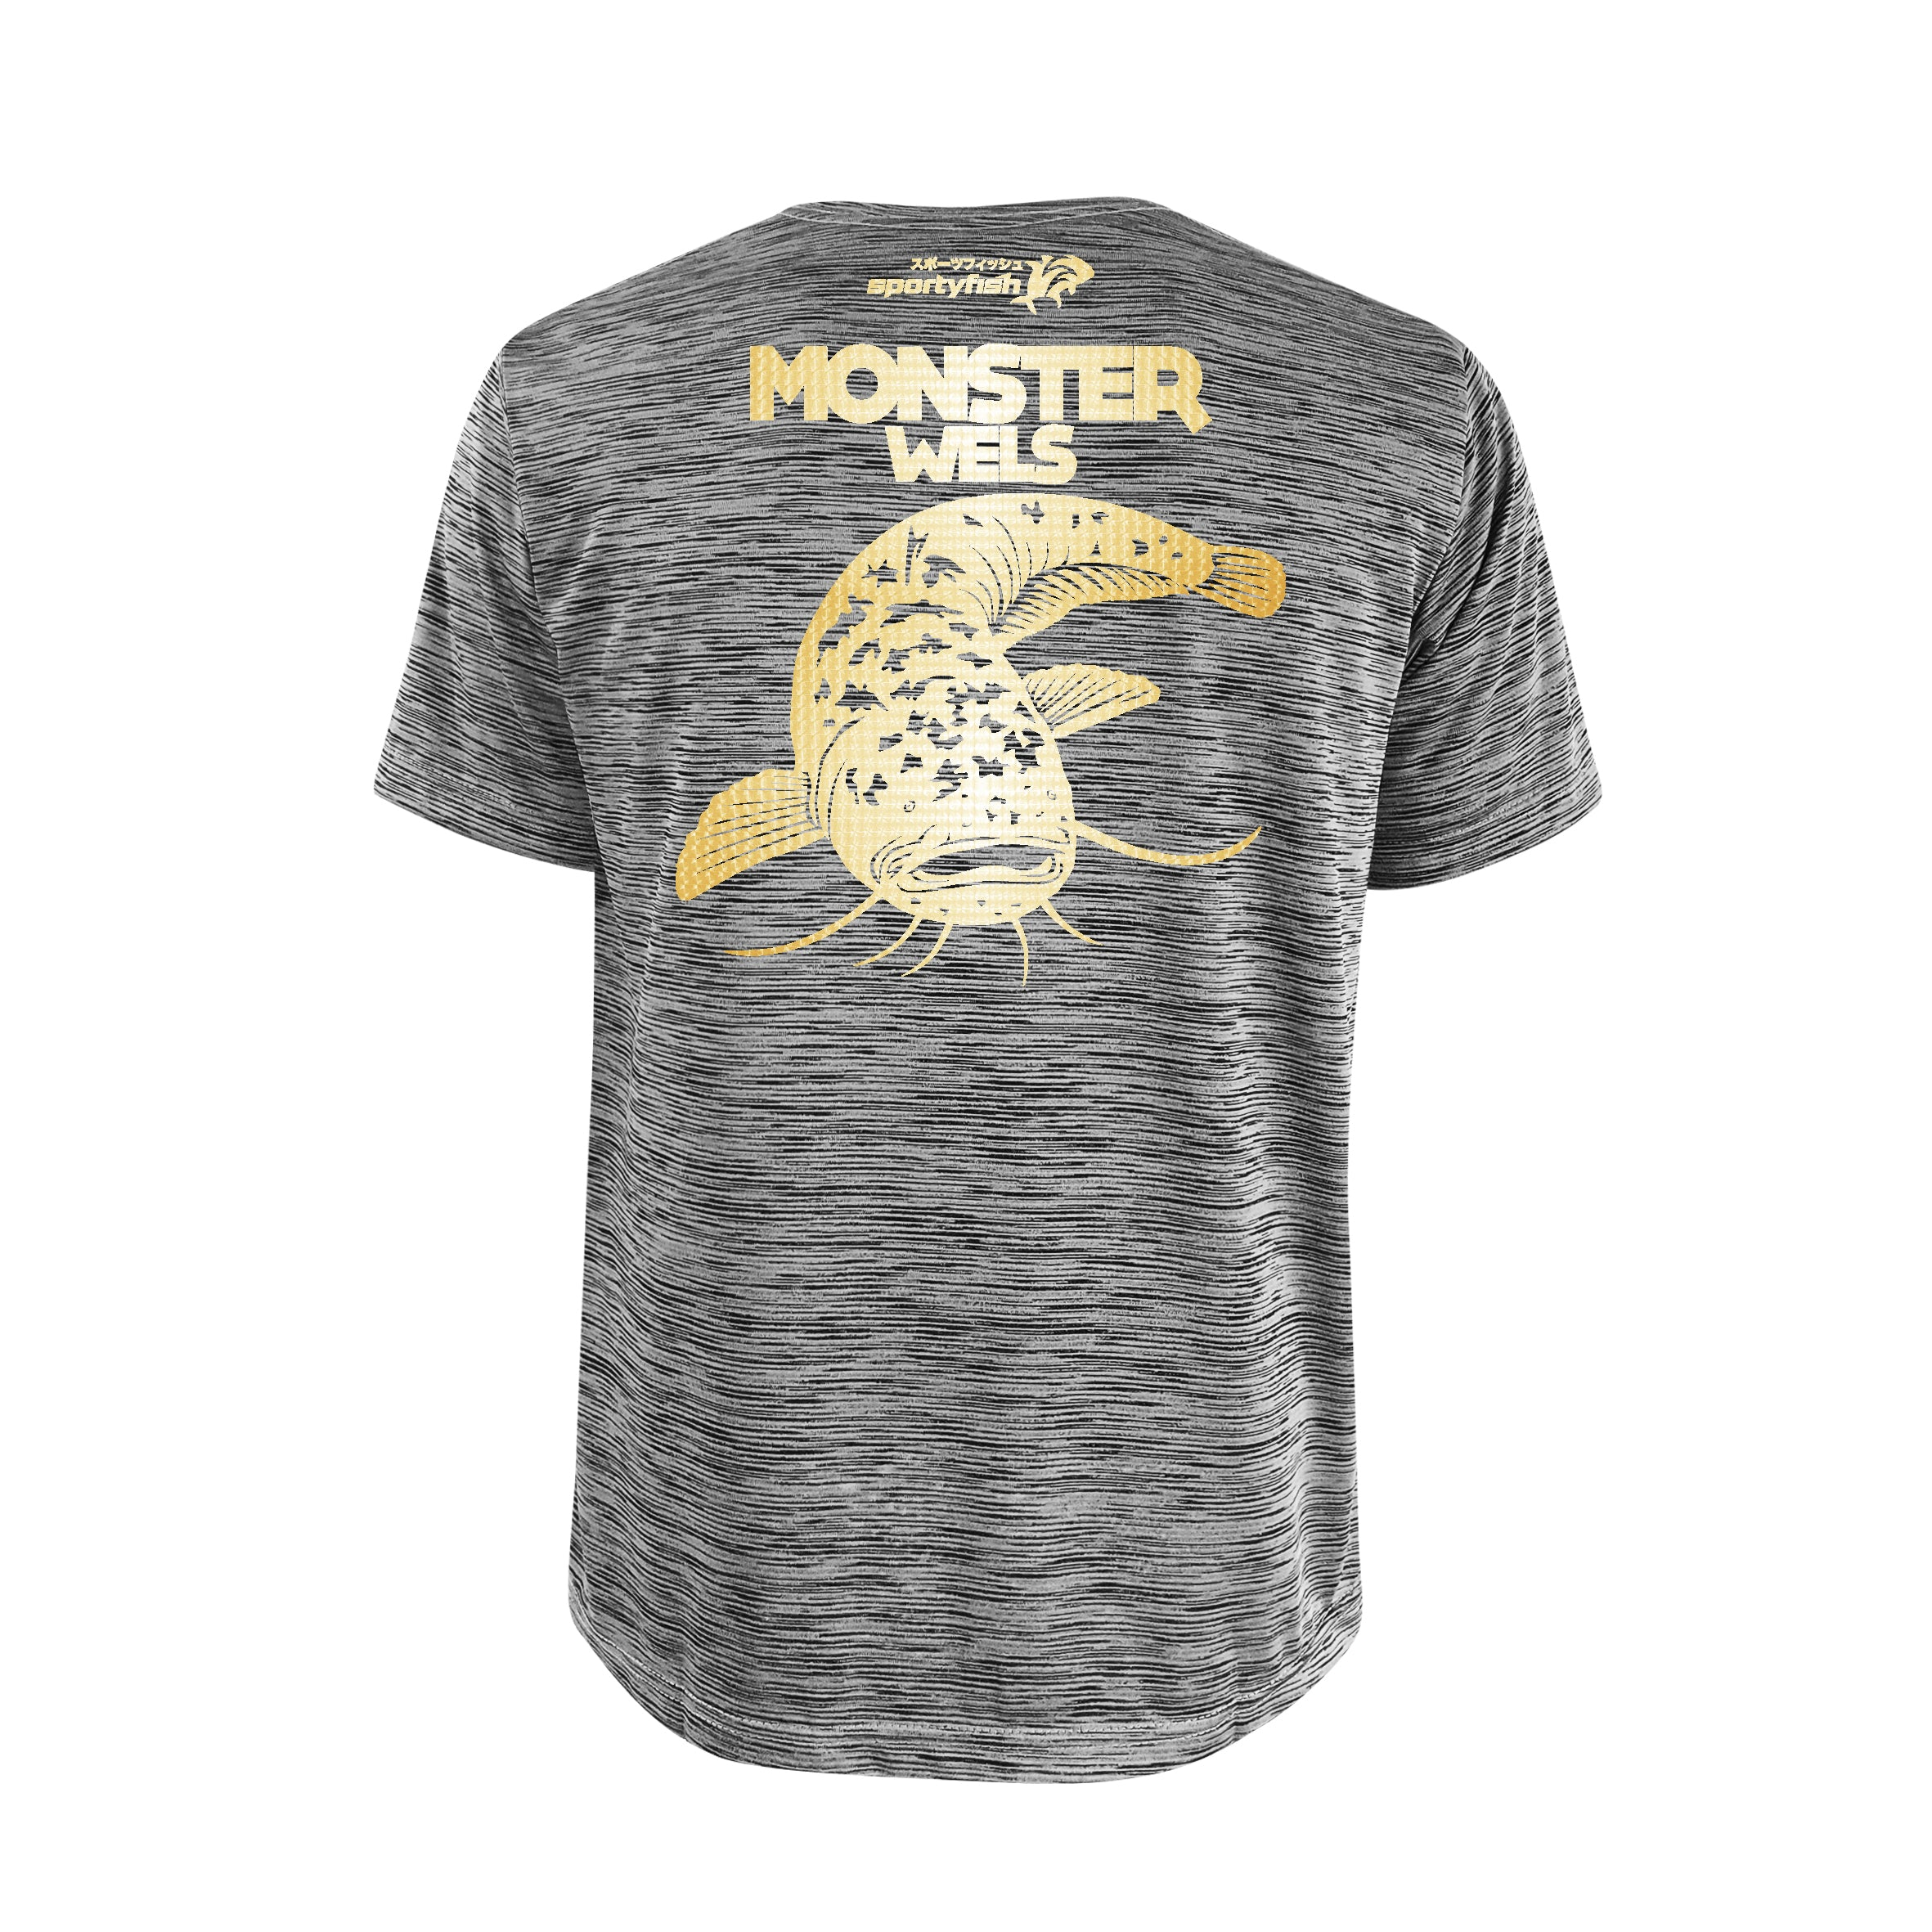 The Wels Catfish - Monster Wels(Gold)